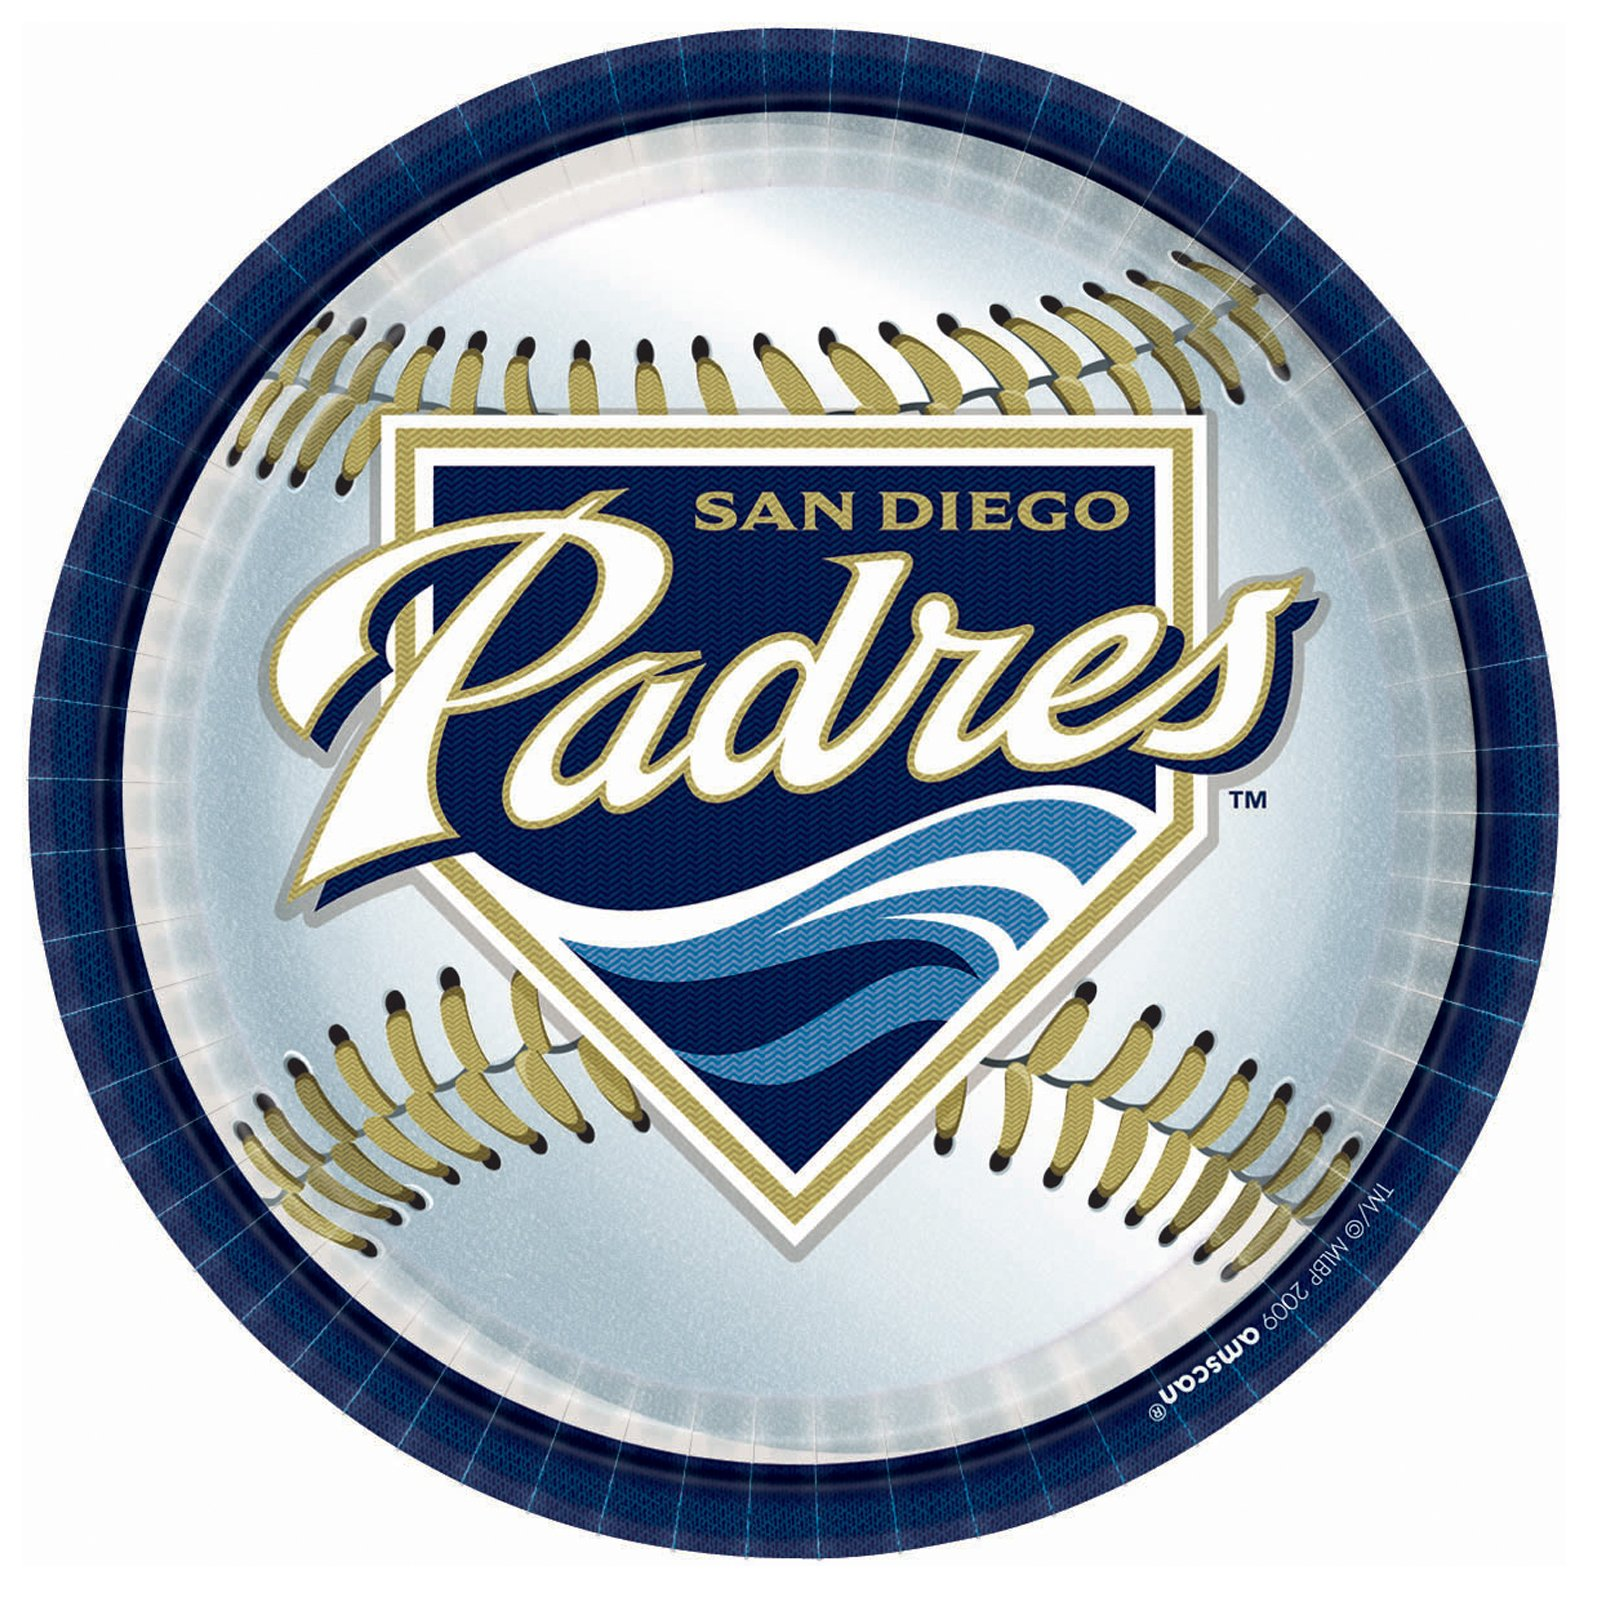 San Diego Padres Baseball - Round Dinner Plates (18 count)